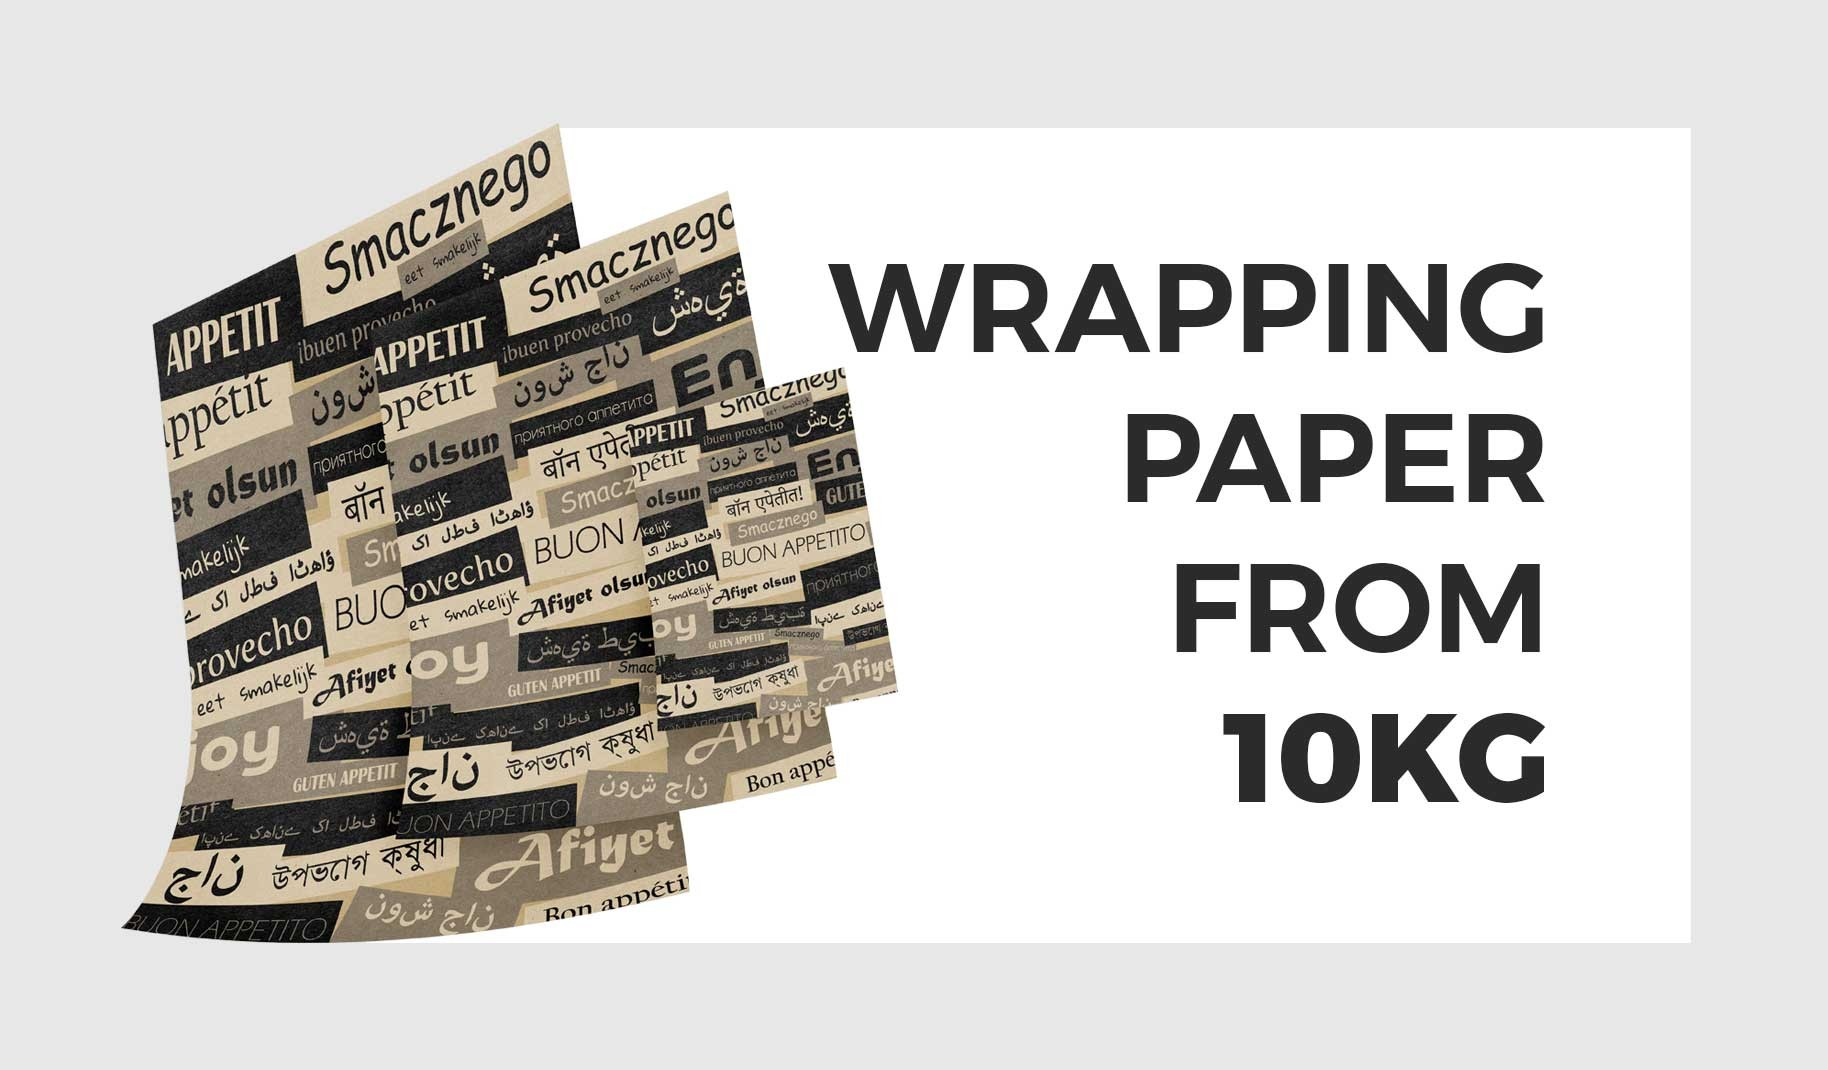 Packaging paper 10kg